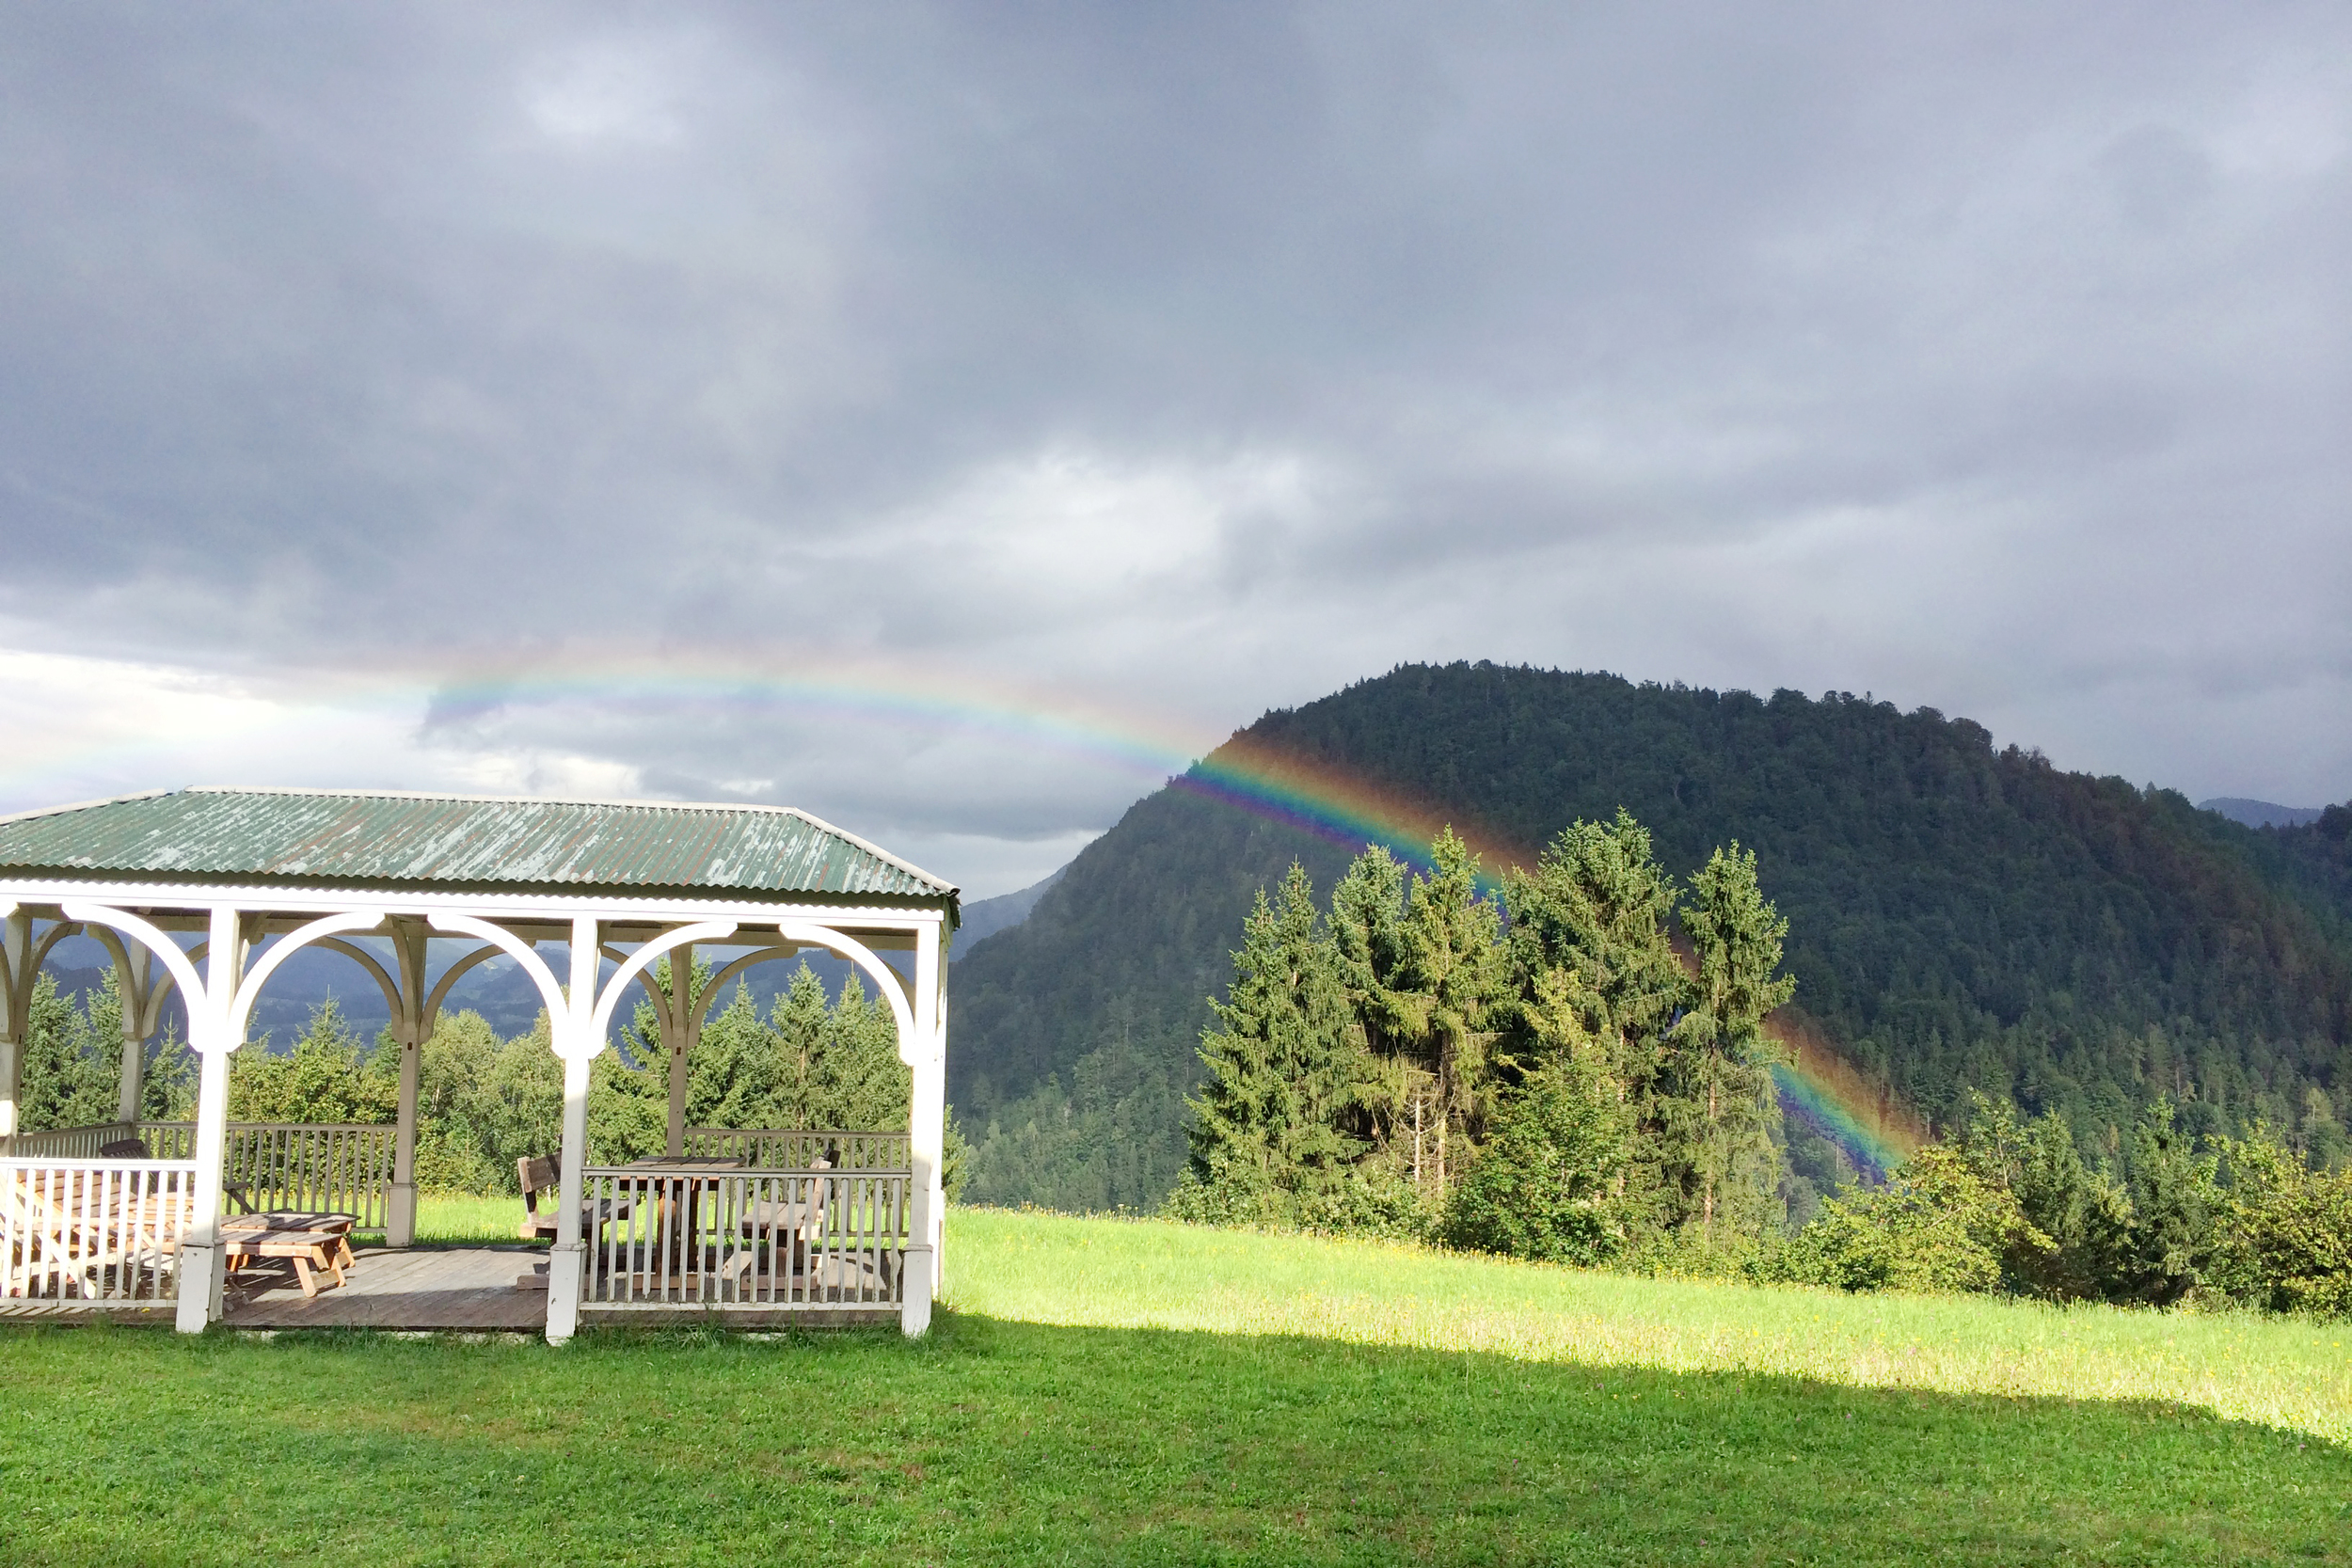 And then there was a rainbow ( Genesis 9:12-17 ). Because rain doesn't last forever :).